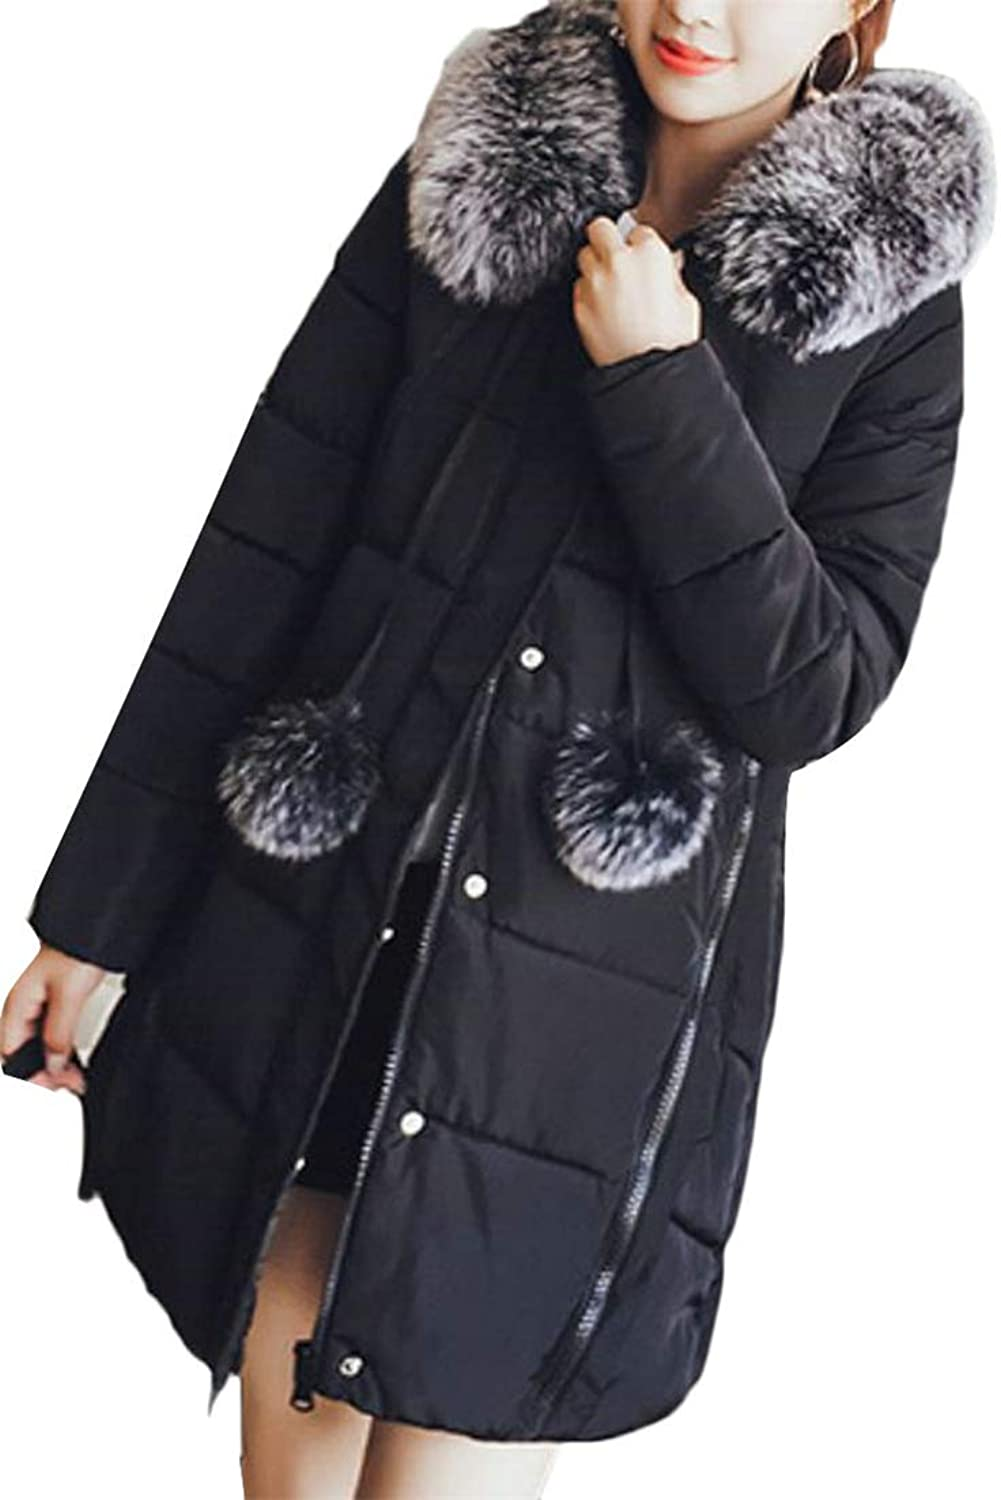 JSY Women Autumn Winter Faux Fur Hooded Parkas Outer Quilted Flare Down Coat